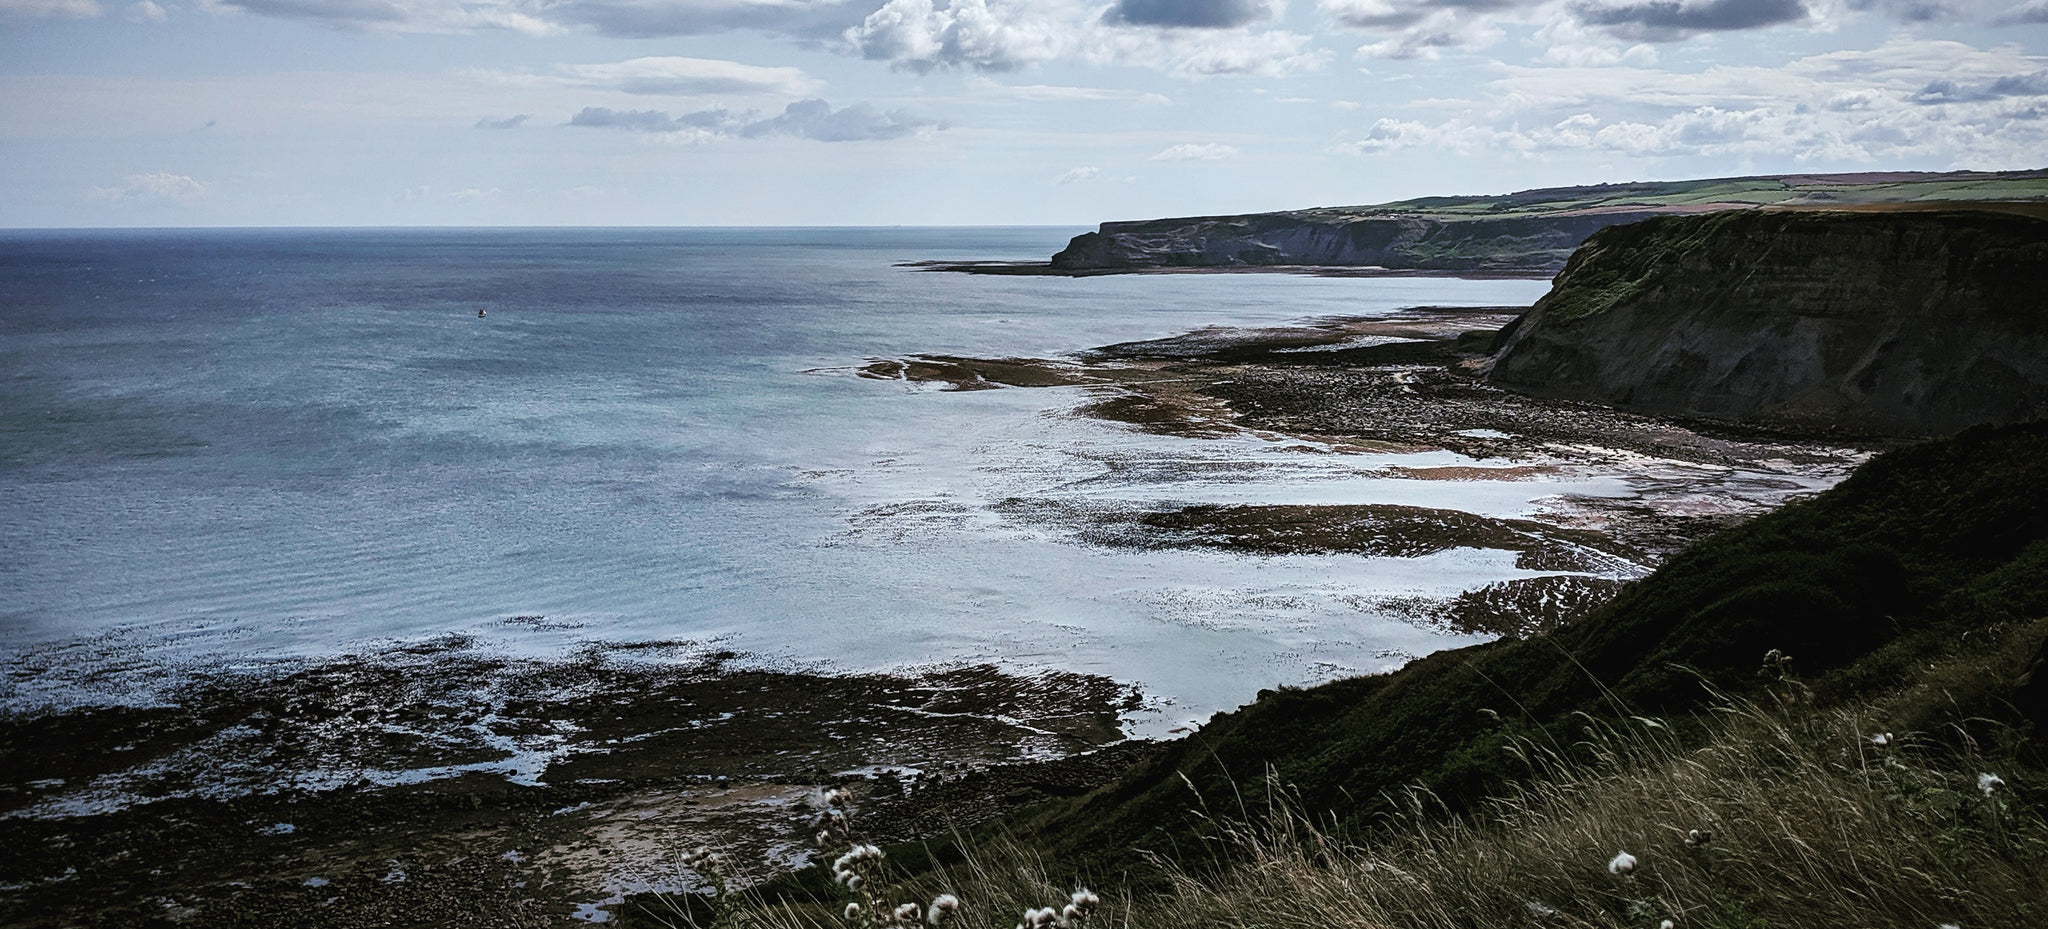 The Wild Beaches of North Yorkshire